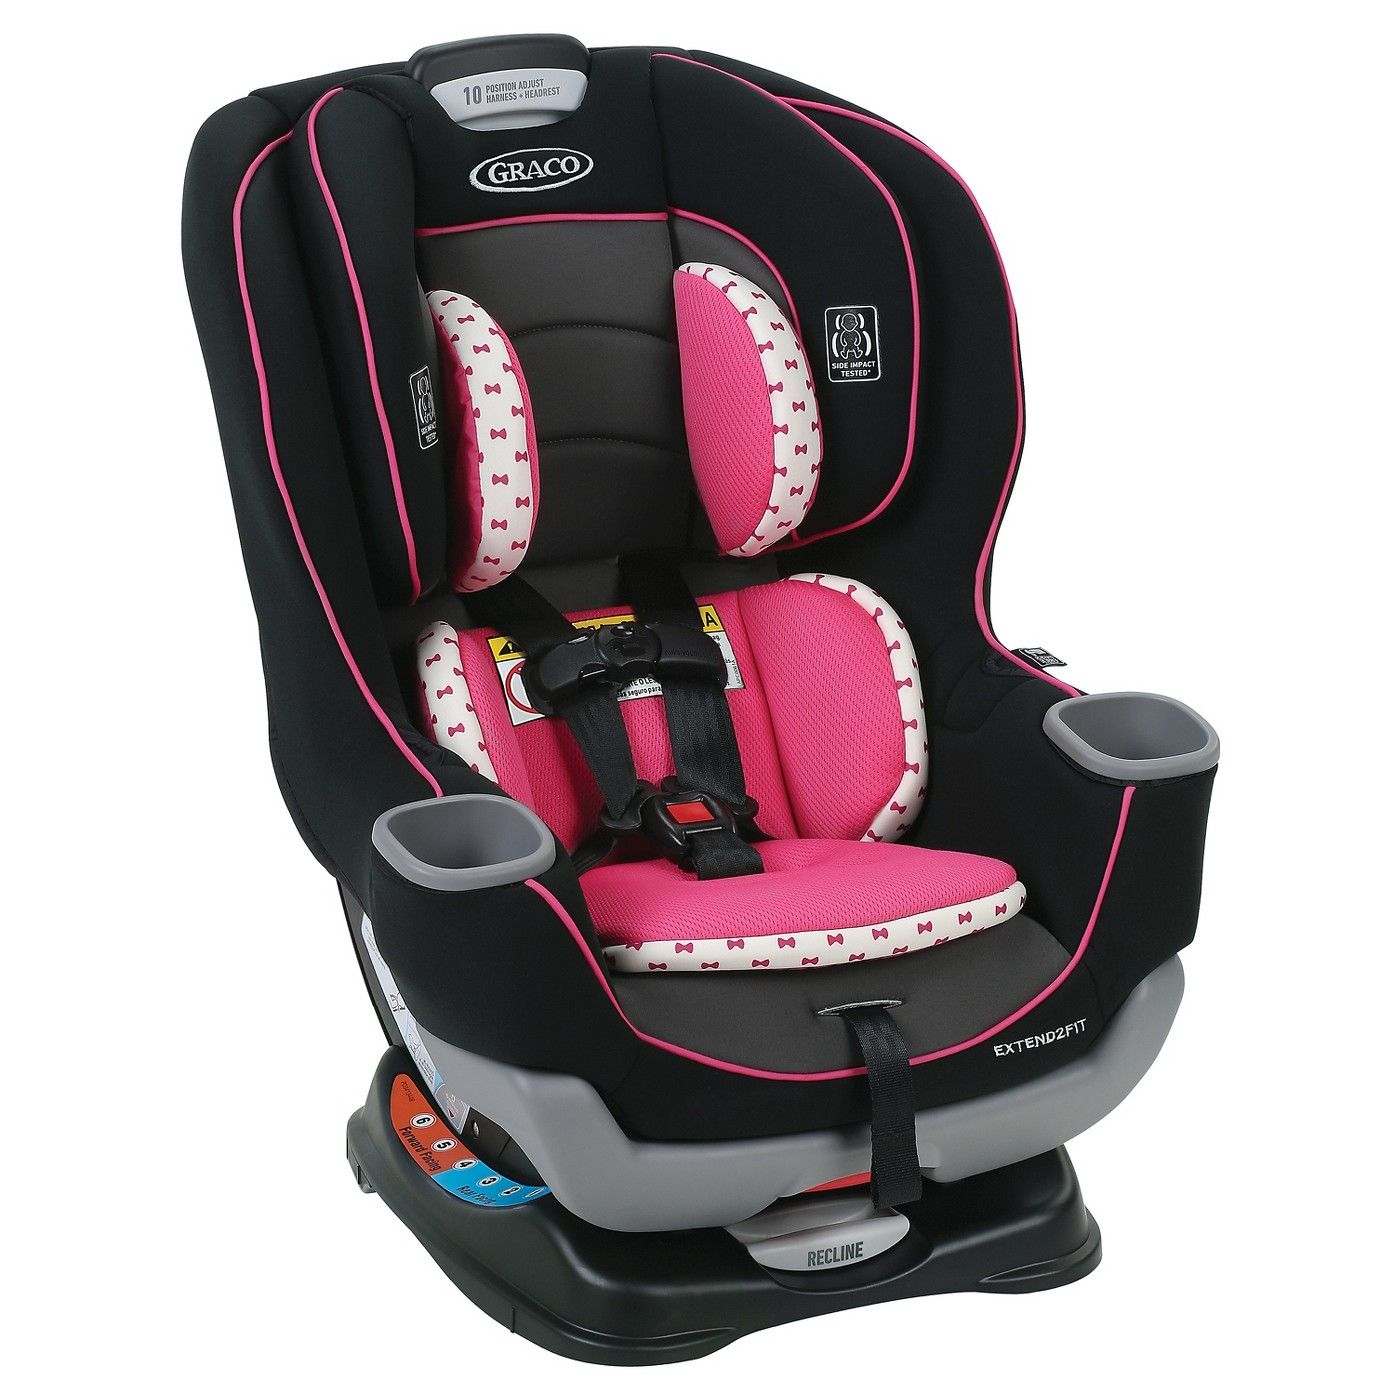 Graco Extend2Fit Convertible Car Seat Sponsored